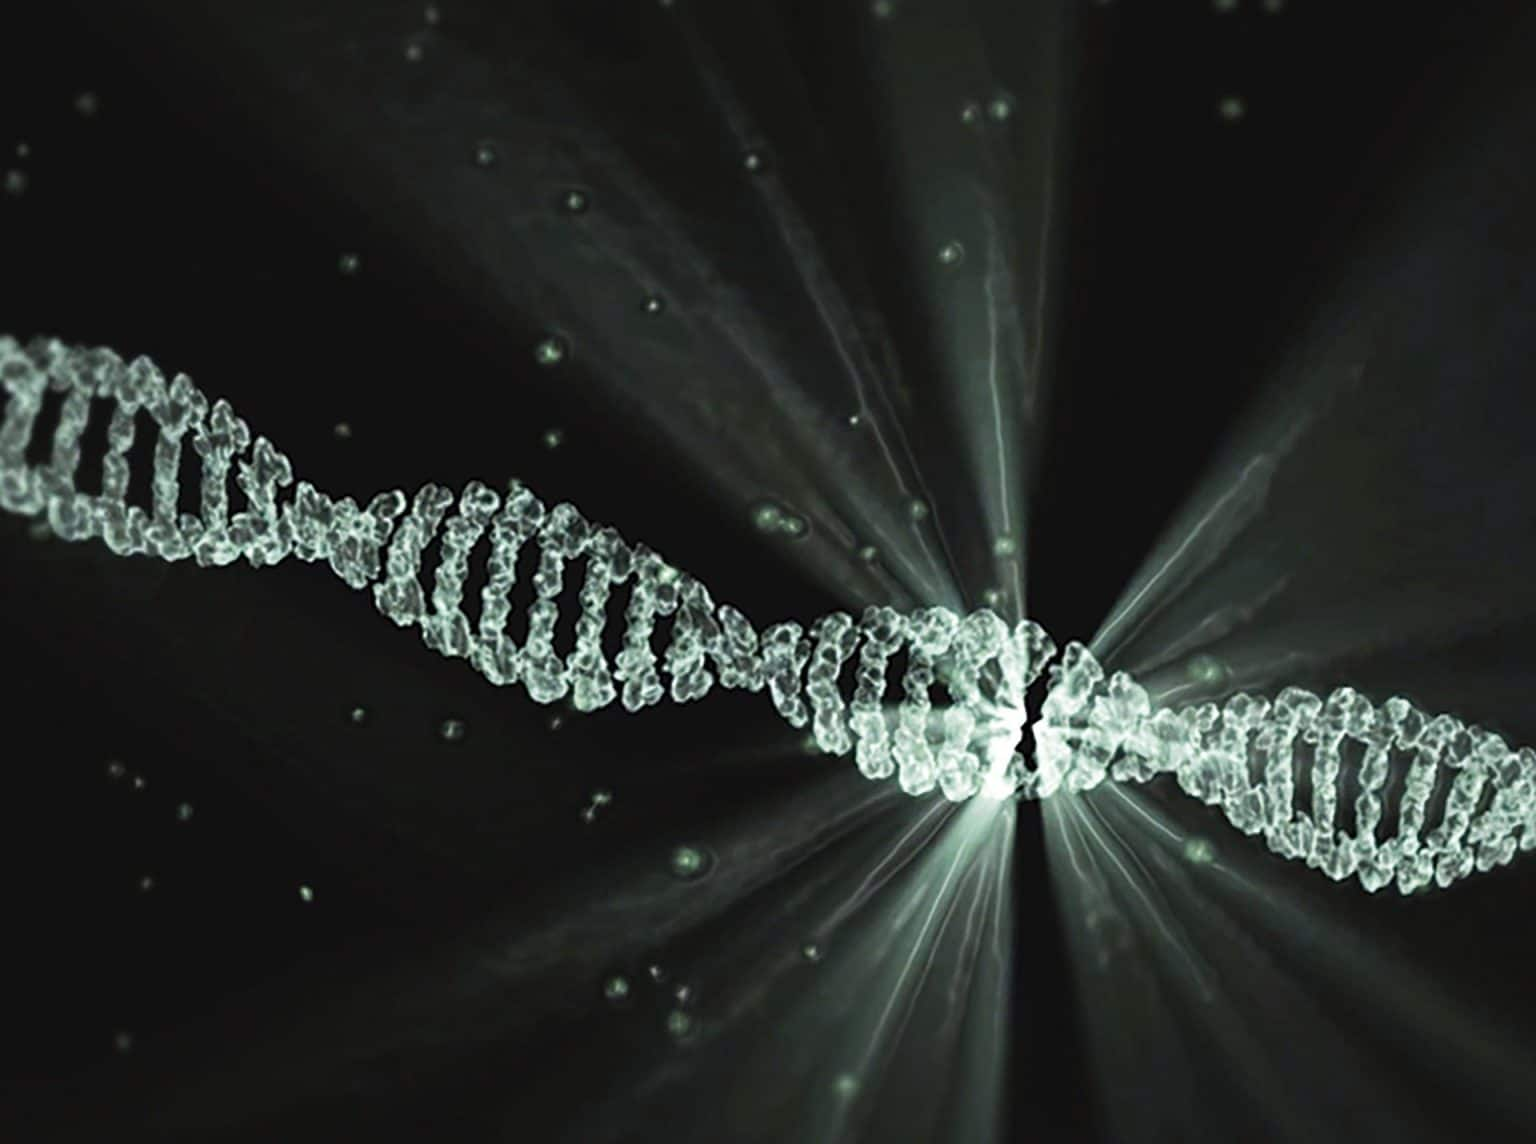 SynBioBeta: Living Power: This Bio-Battery Is Harnessing the Power of DNA